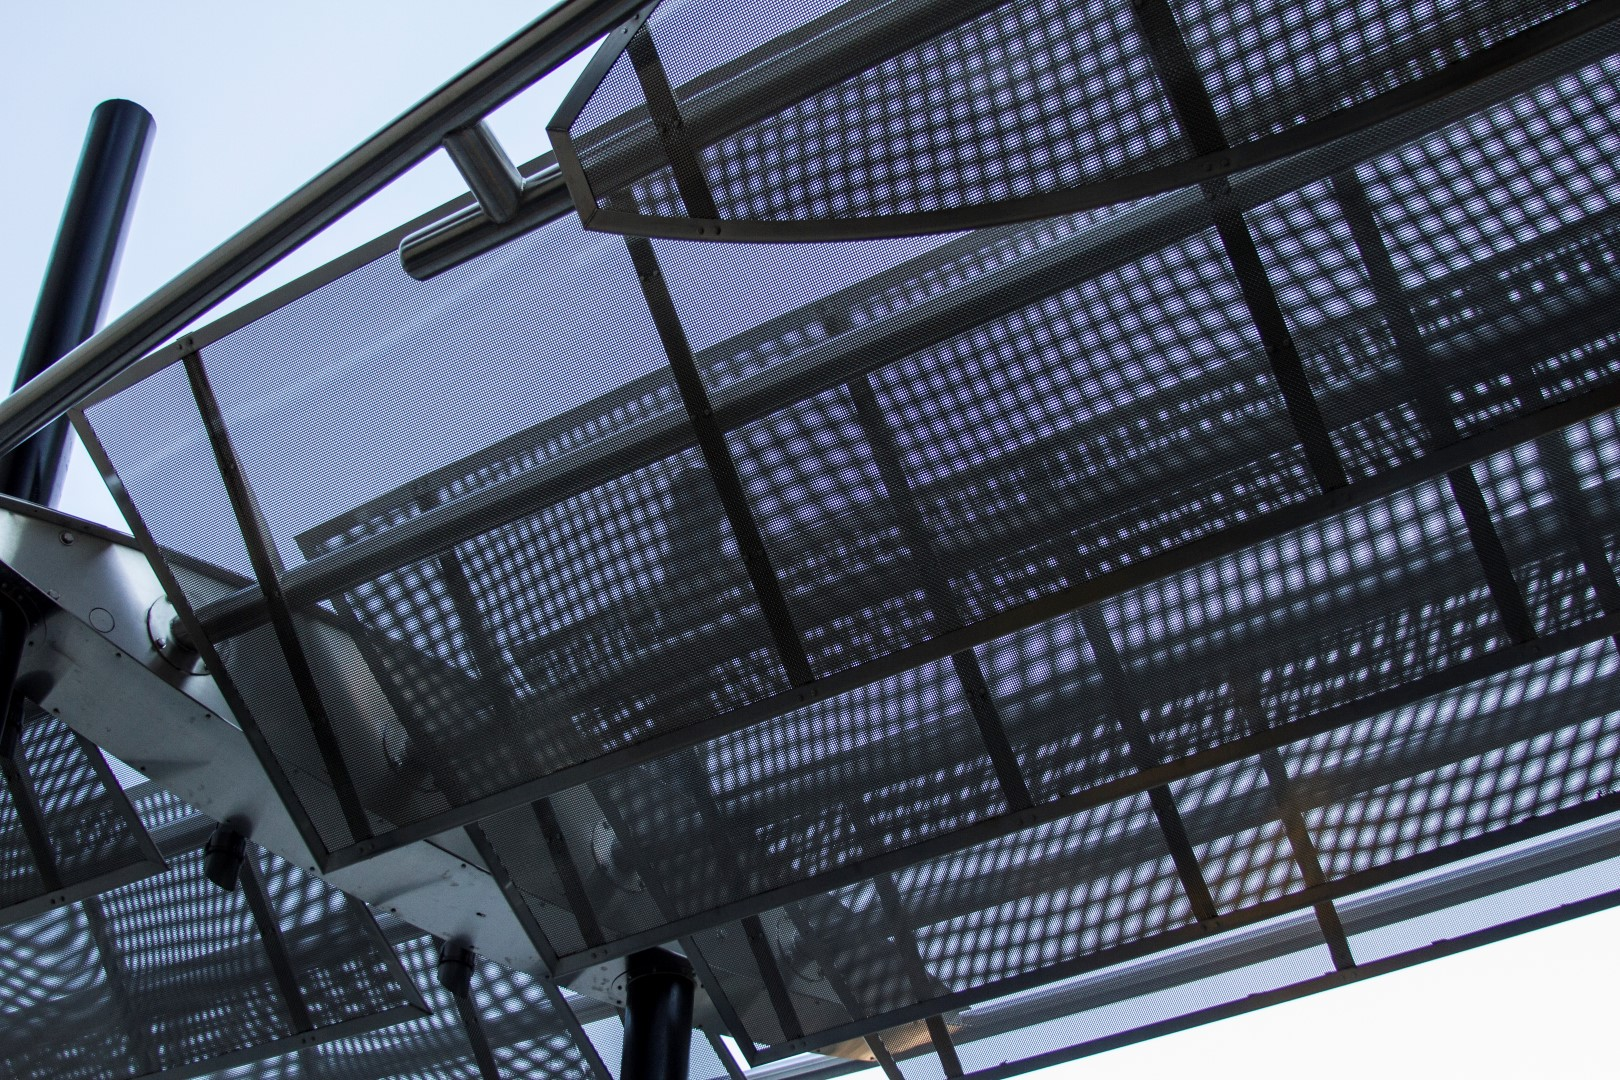 R.F. Knox Company, Inc., a fabricator based in Smyrna, G.A., executed Civitas' vision by surrounding the woven wire mesh with U-edge frames.